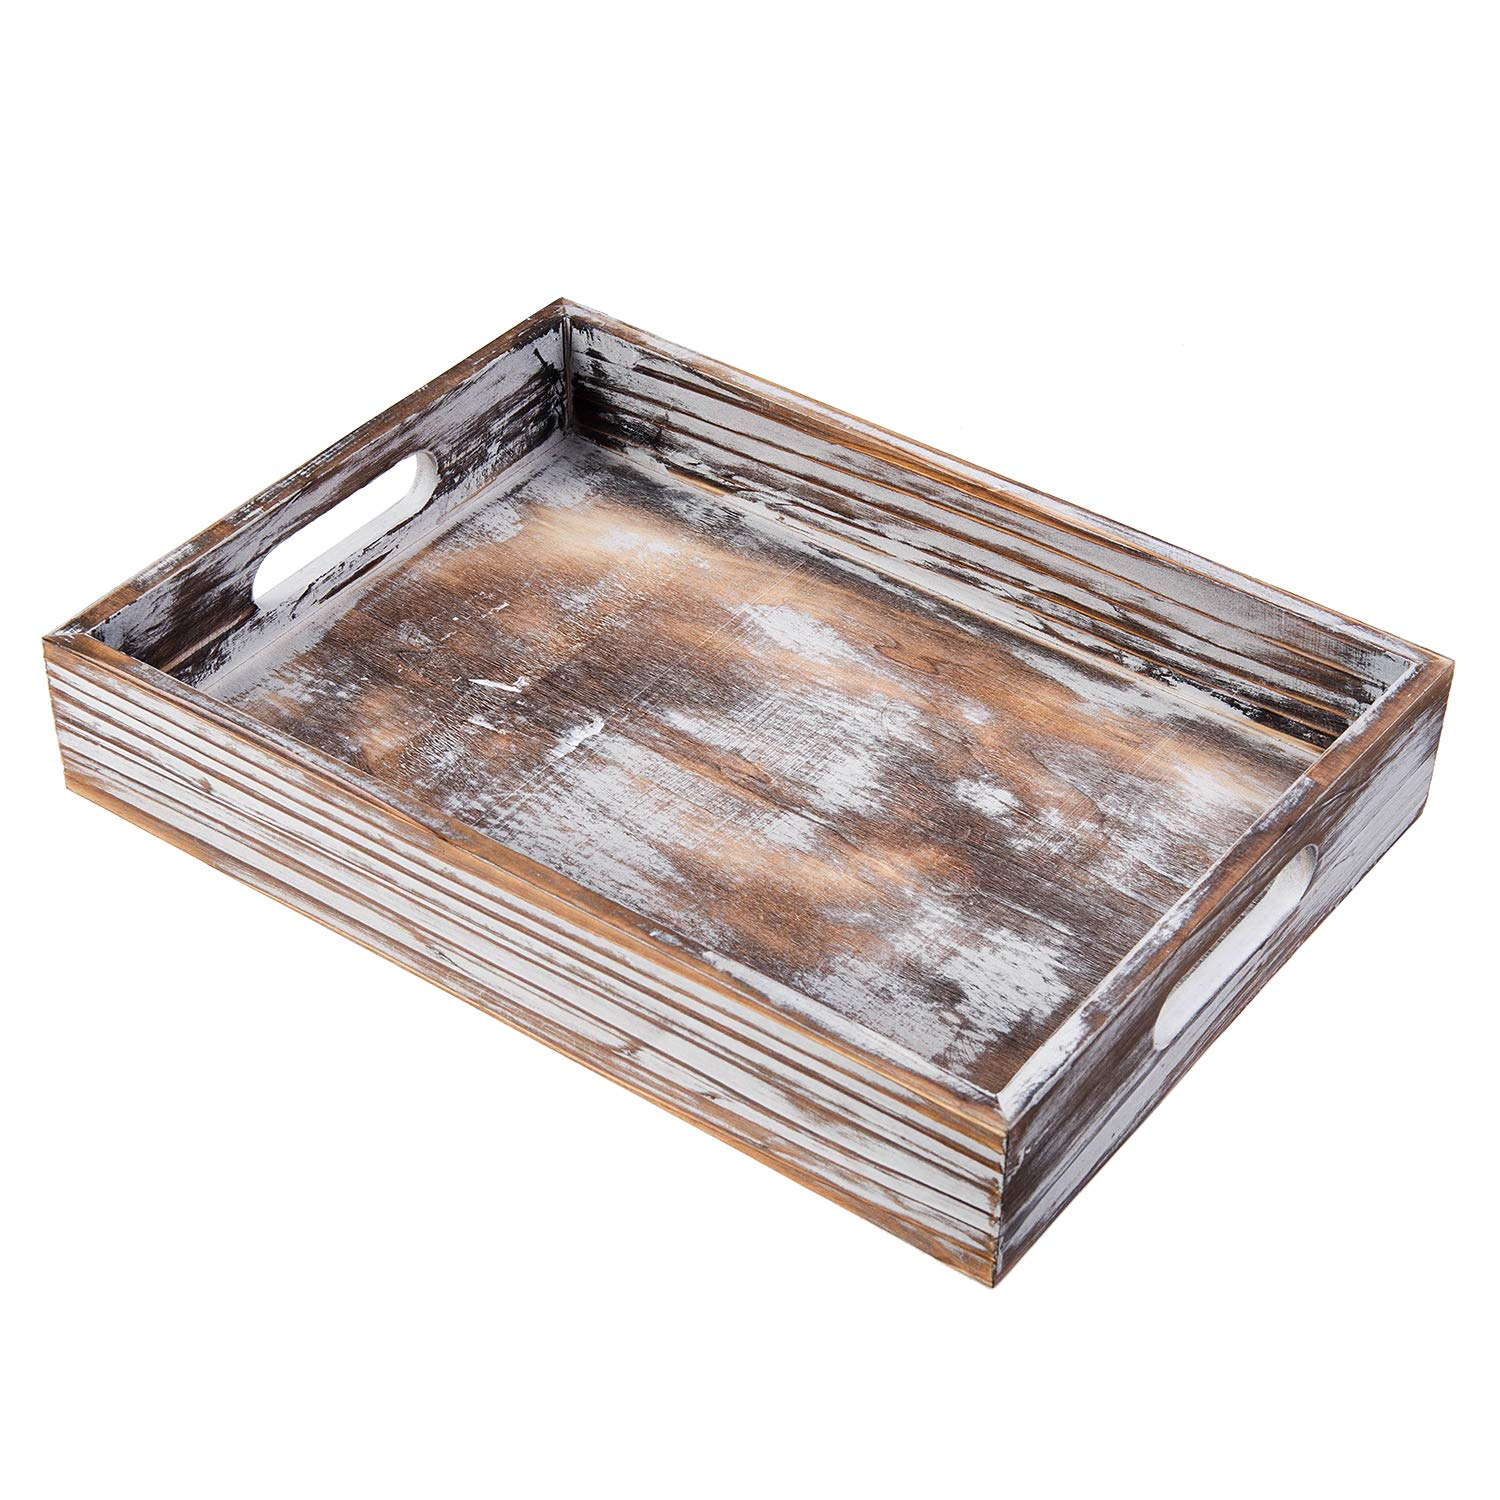 Liry Products Rustic Whitewashed Wood Food Serving Tray Cutout Carrying Handles Breakfast in Bed Coffee Platter Table Wine Brown Rectangular Nesting Crate Desktop Document Holder Office Home Kitchen